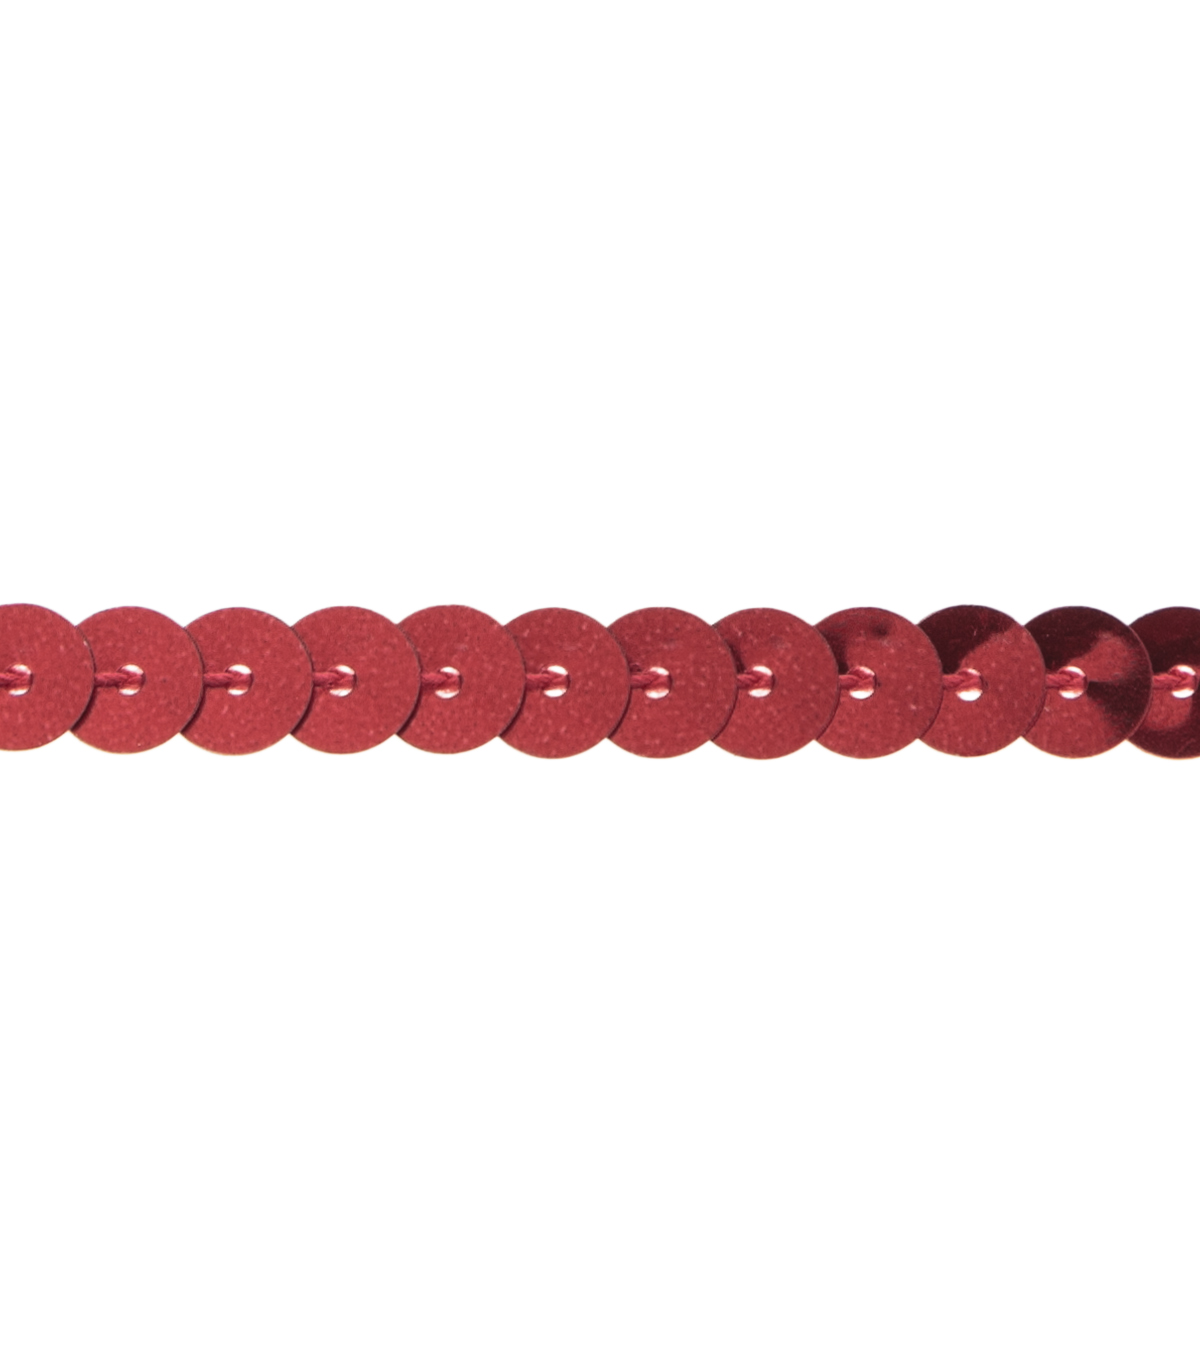 1/4\u0022 Sequin Red Apparel Trim